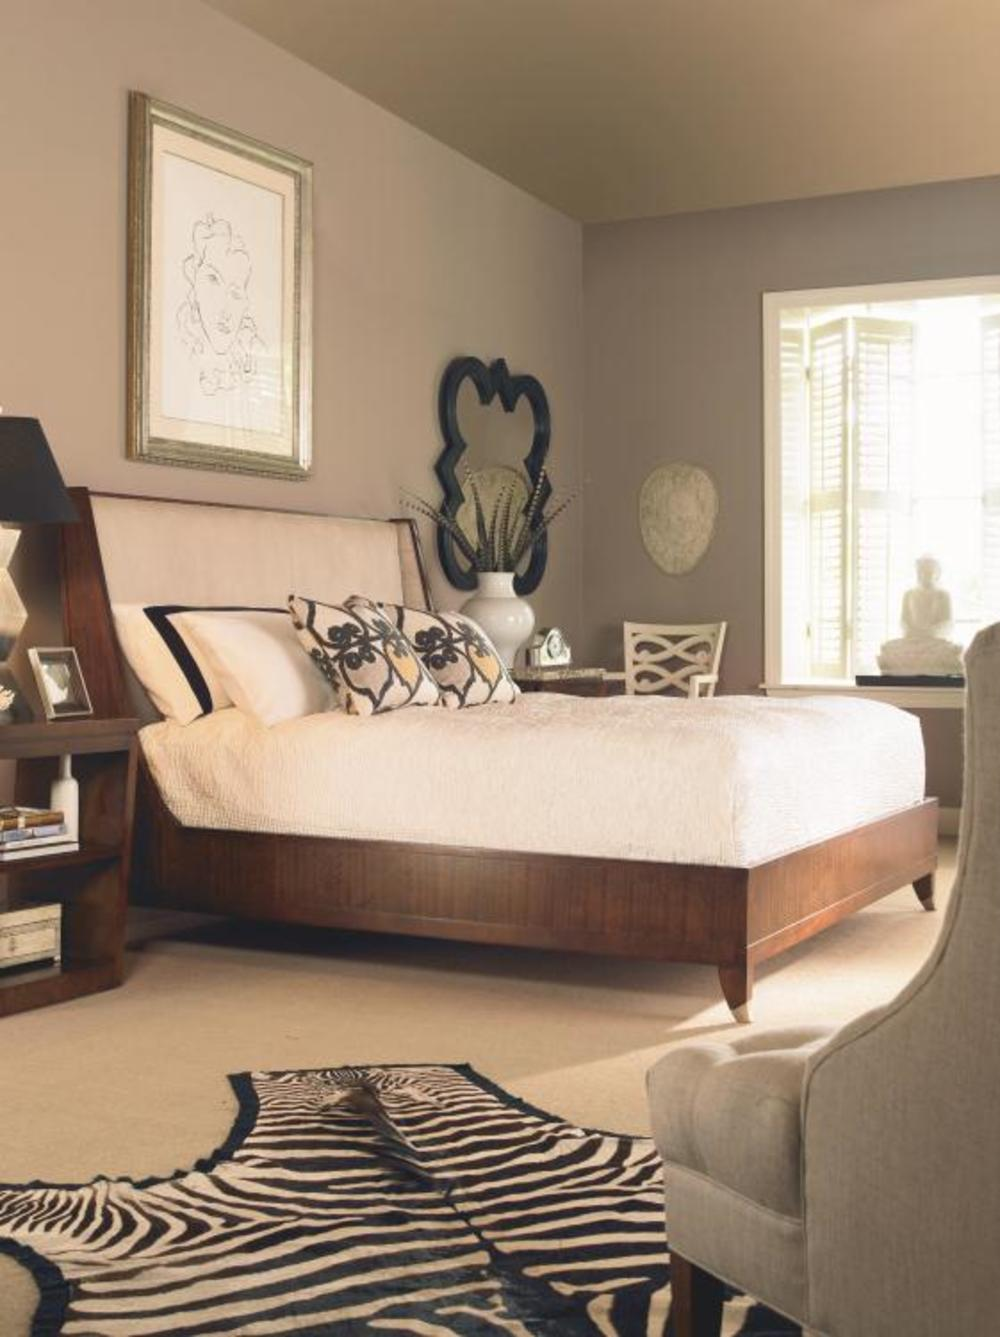 Century Furniture - Omni Bed with Upholstered Headboard, King